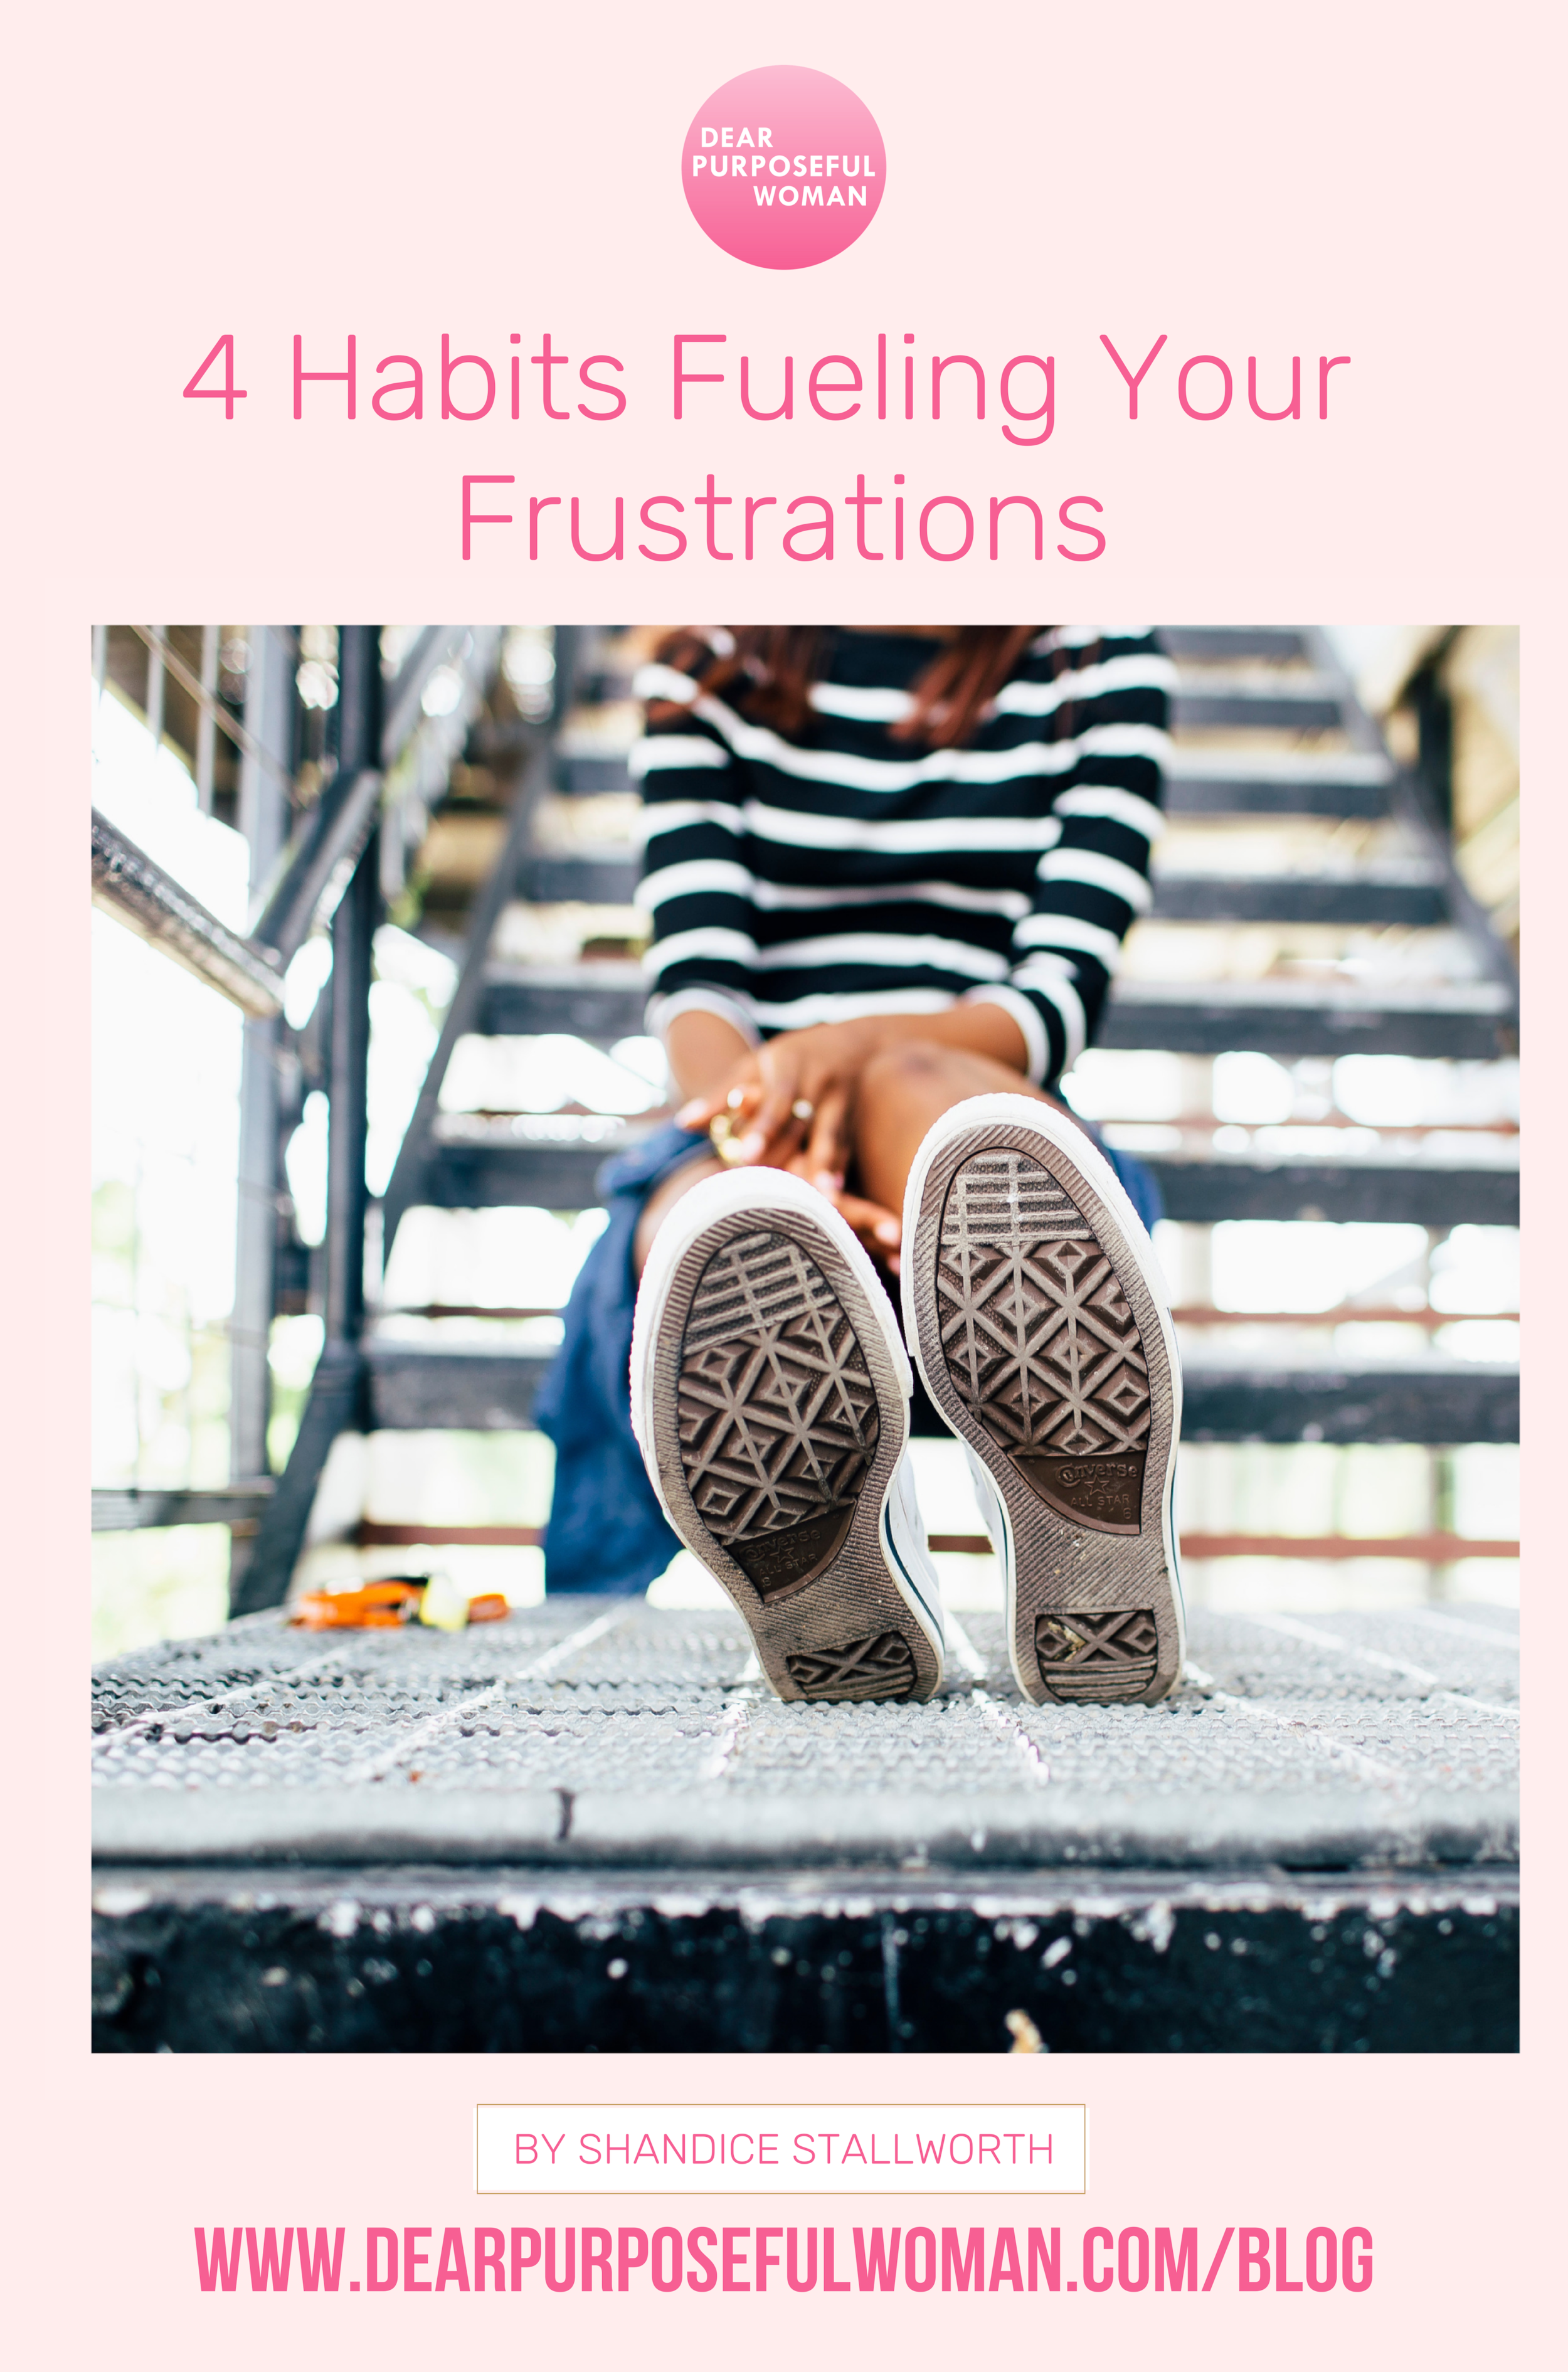 4 Habits Fueling Your Frustrations-  Dear Purposeful Woman (2).png